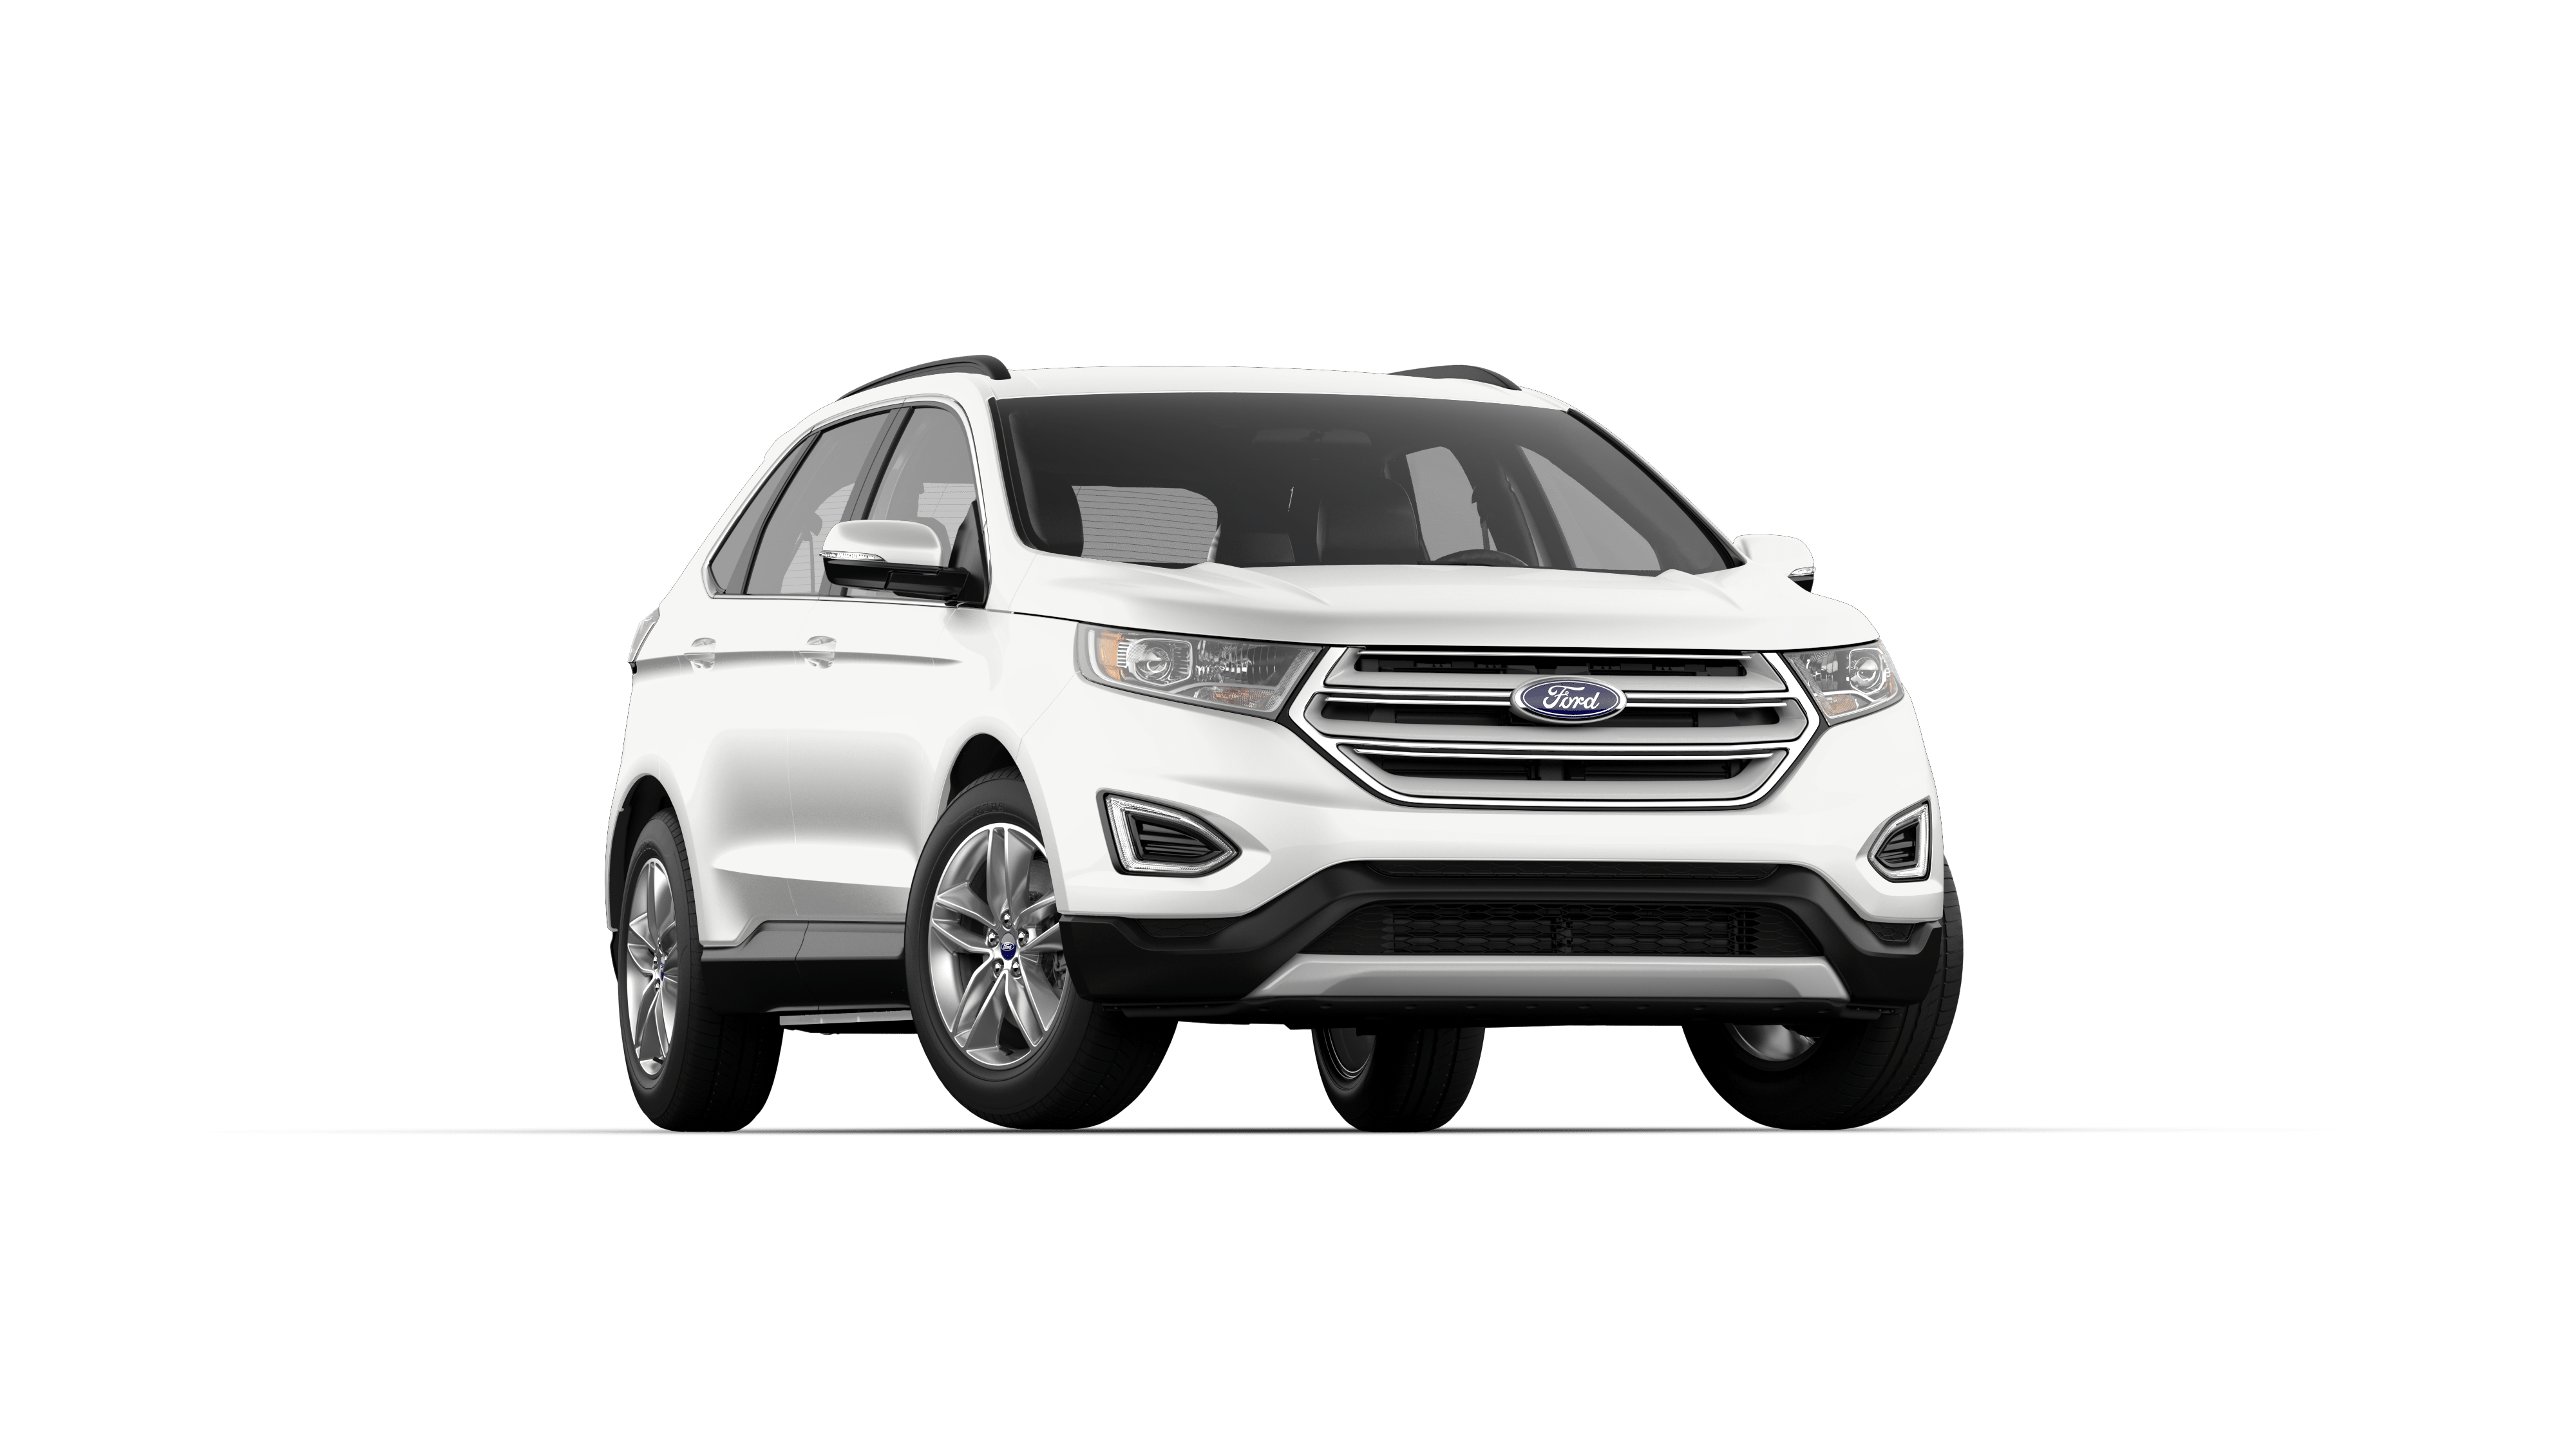 2018 Ford Edge for sale in Ada - 2FMPK3J98JBC06525 ...